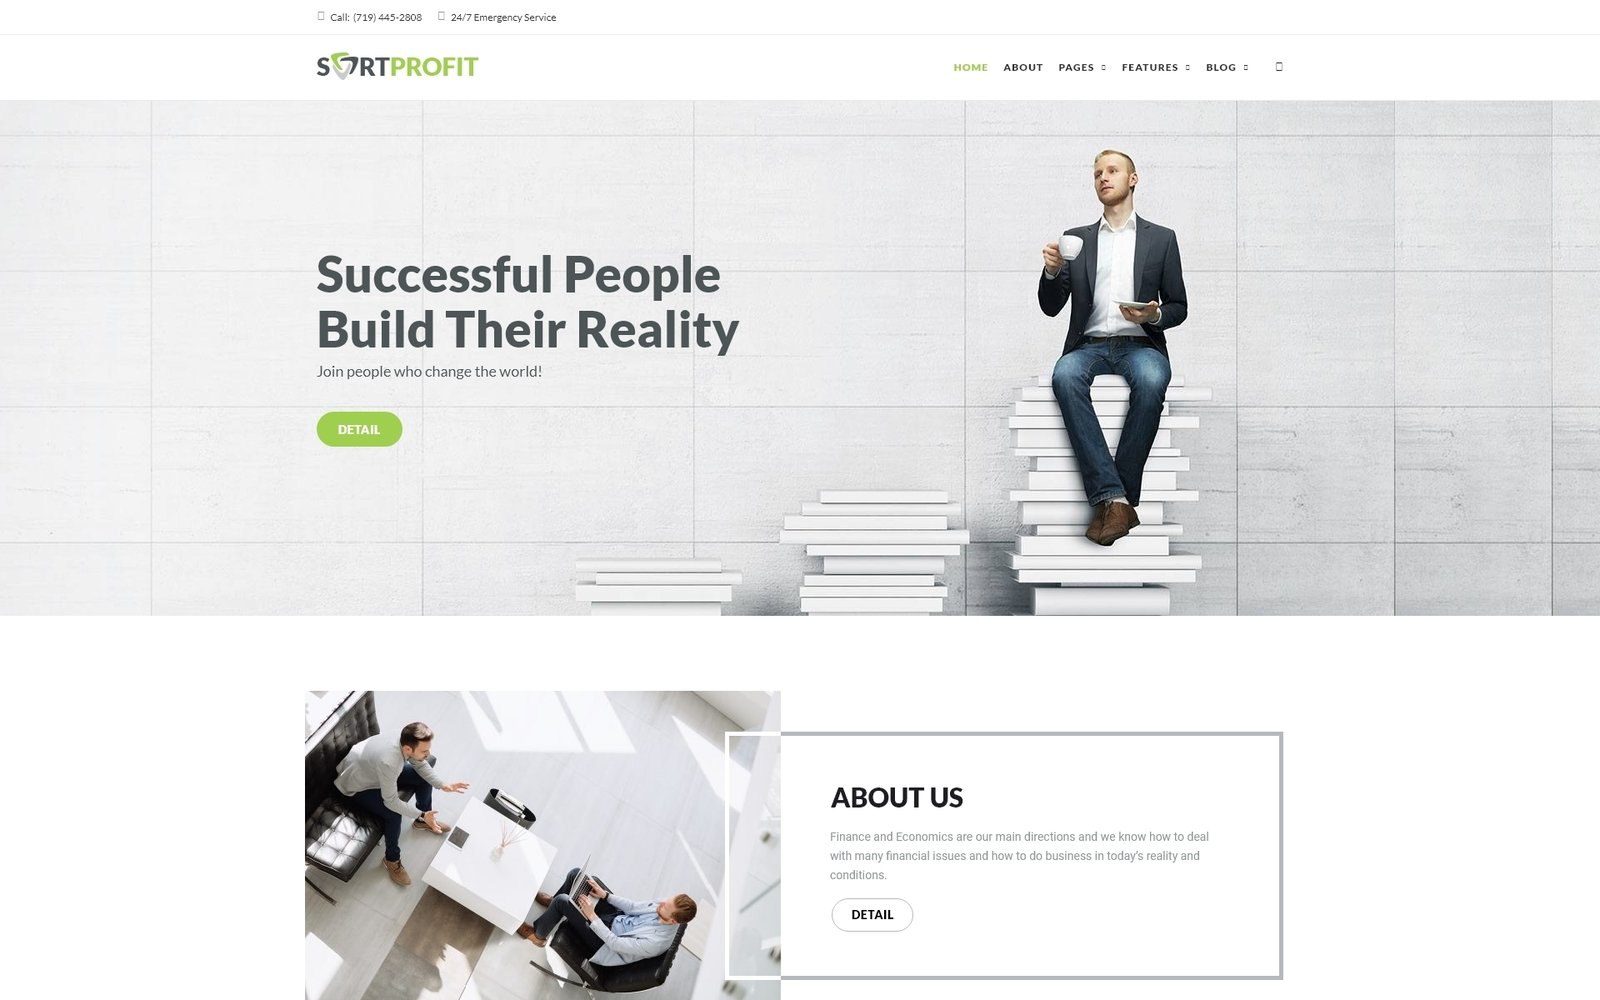 SortProfit - Business & Finance WordPress Theme WordPress Theme - screenshot